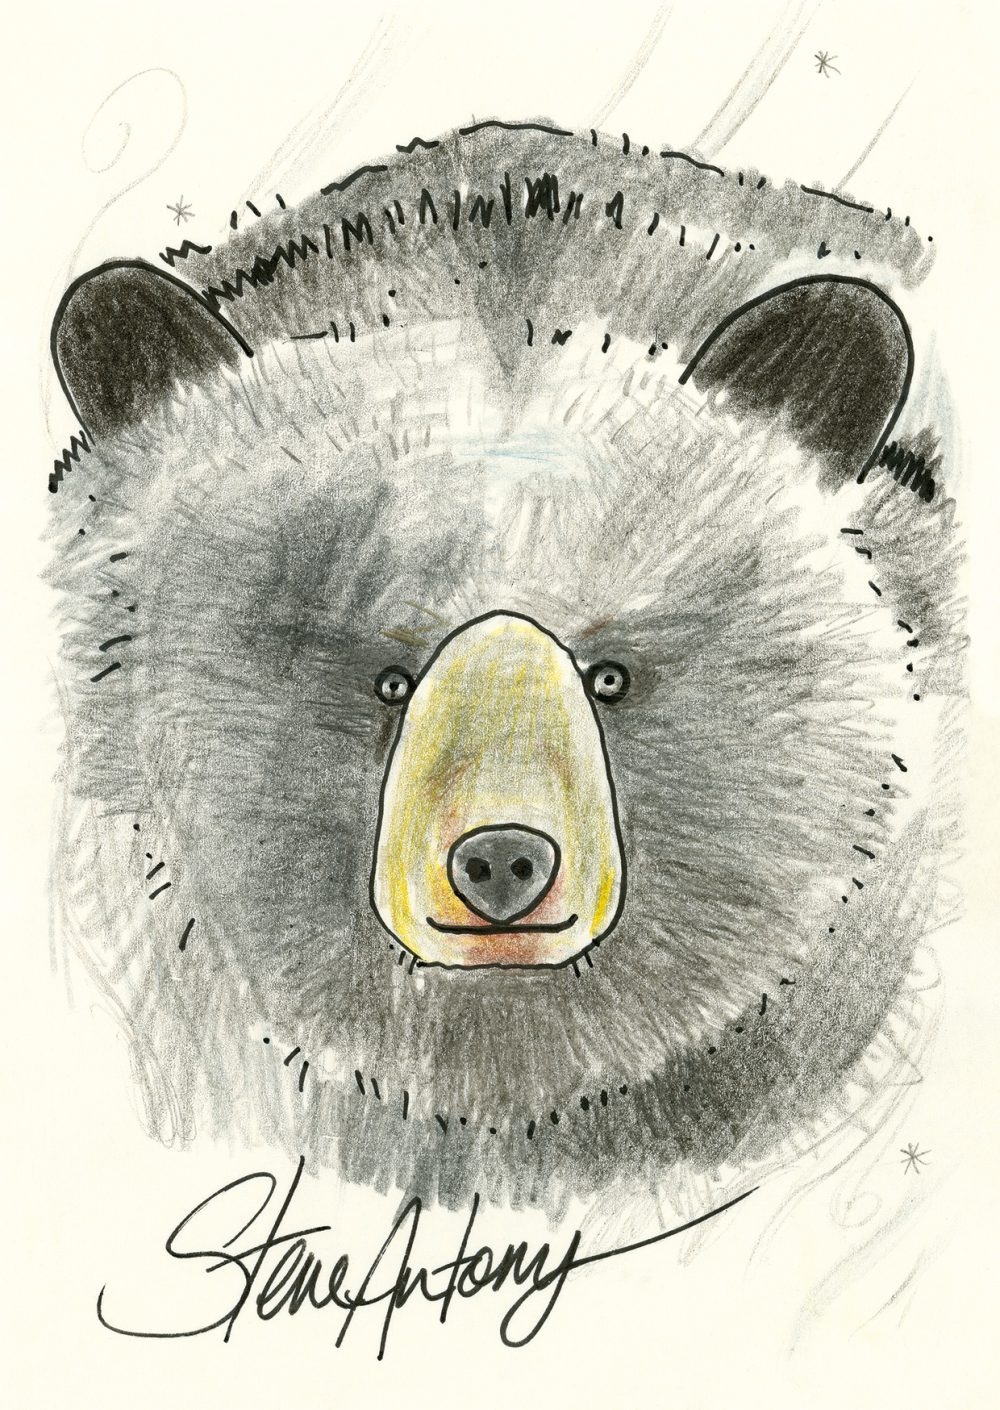 Black Bear – Steve Antony